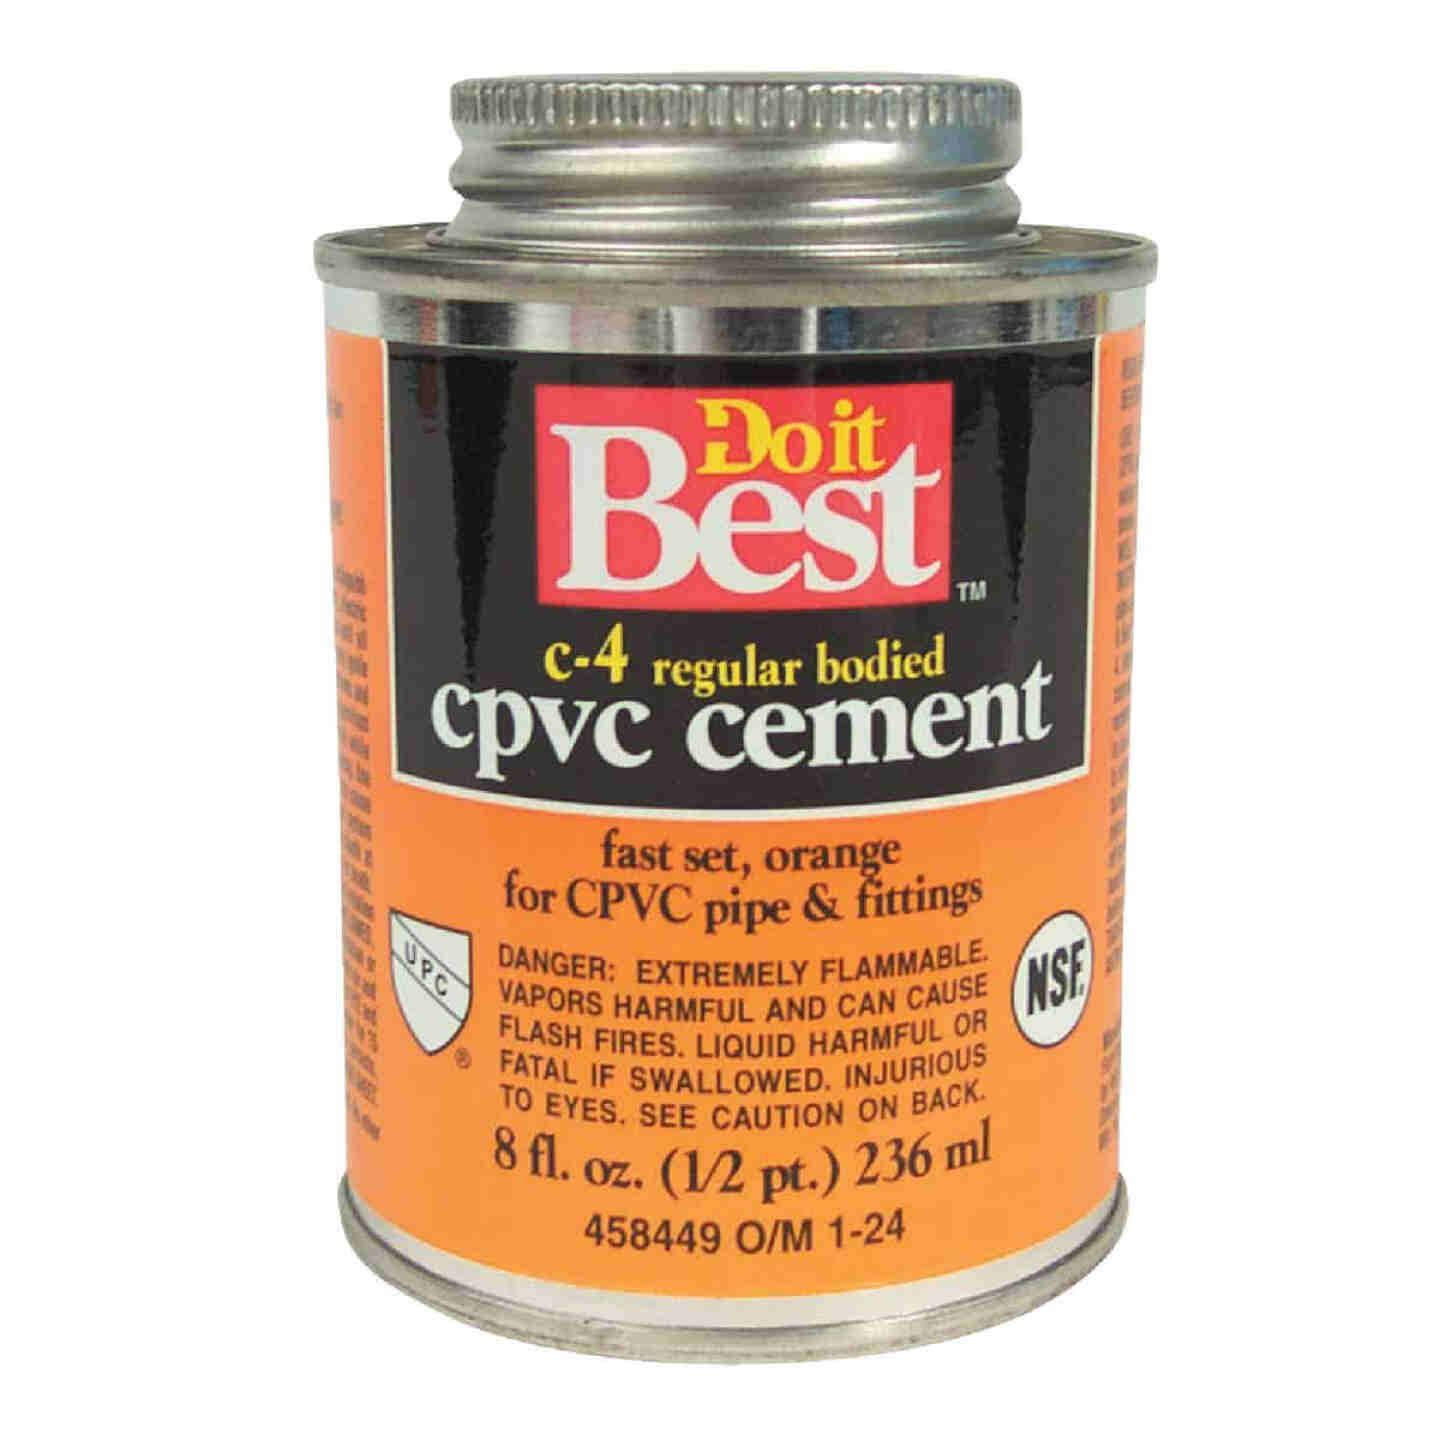 Do it Best 8 Oz. Regular Bodied Orange CPVC Cement Image 1